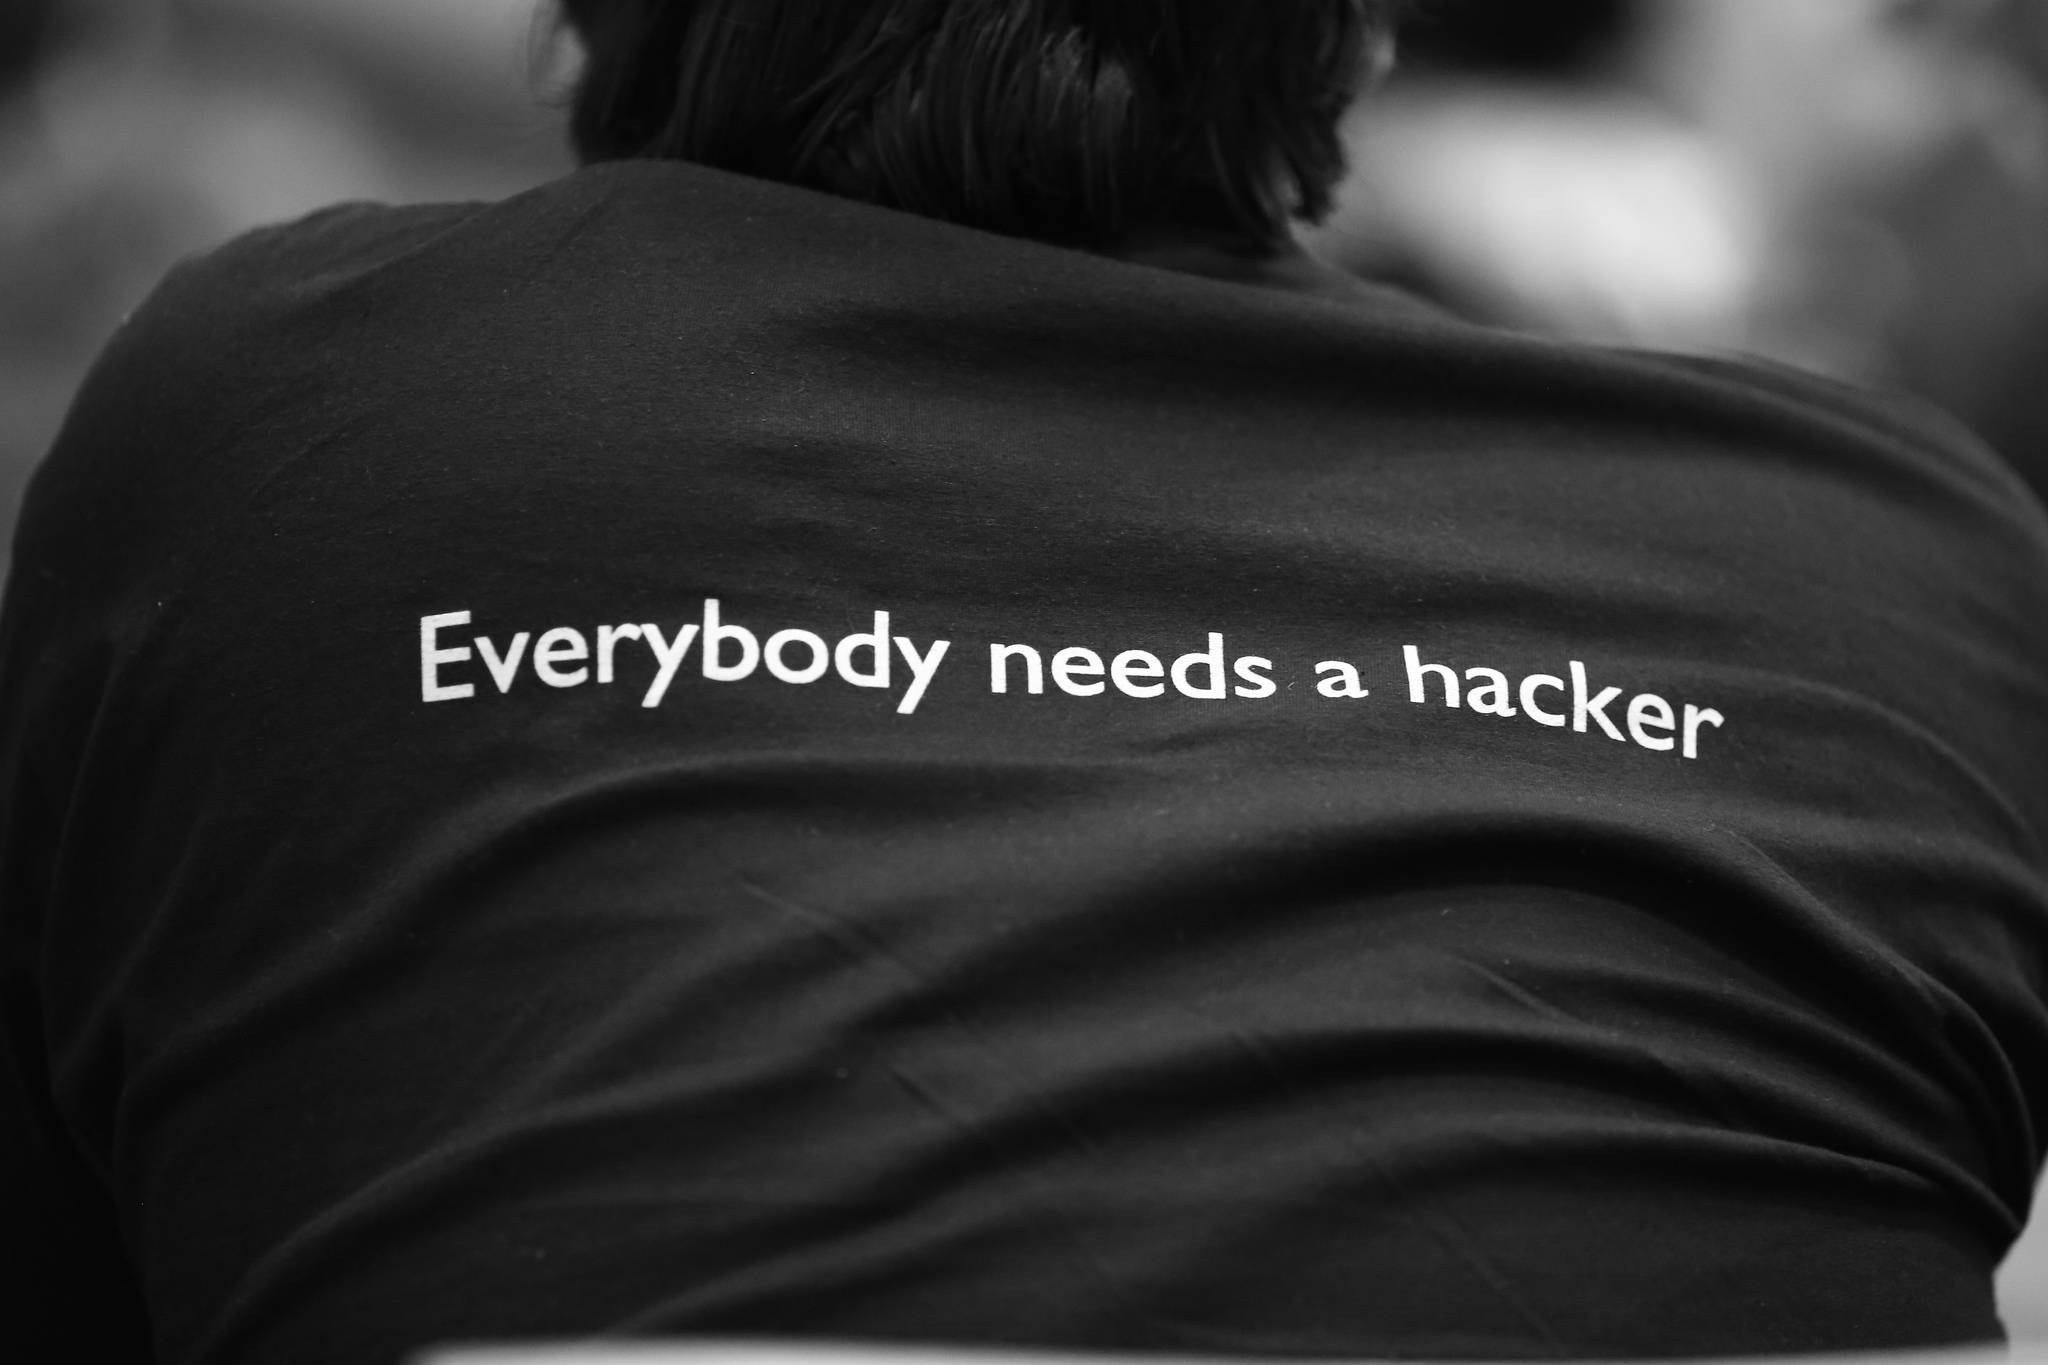 Limitar el número de intentos en el login de WordPress - Everybody needs a hacker